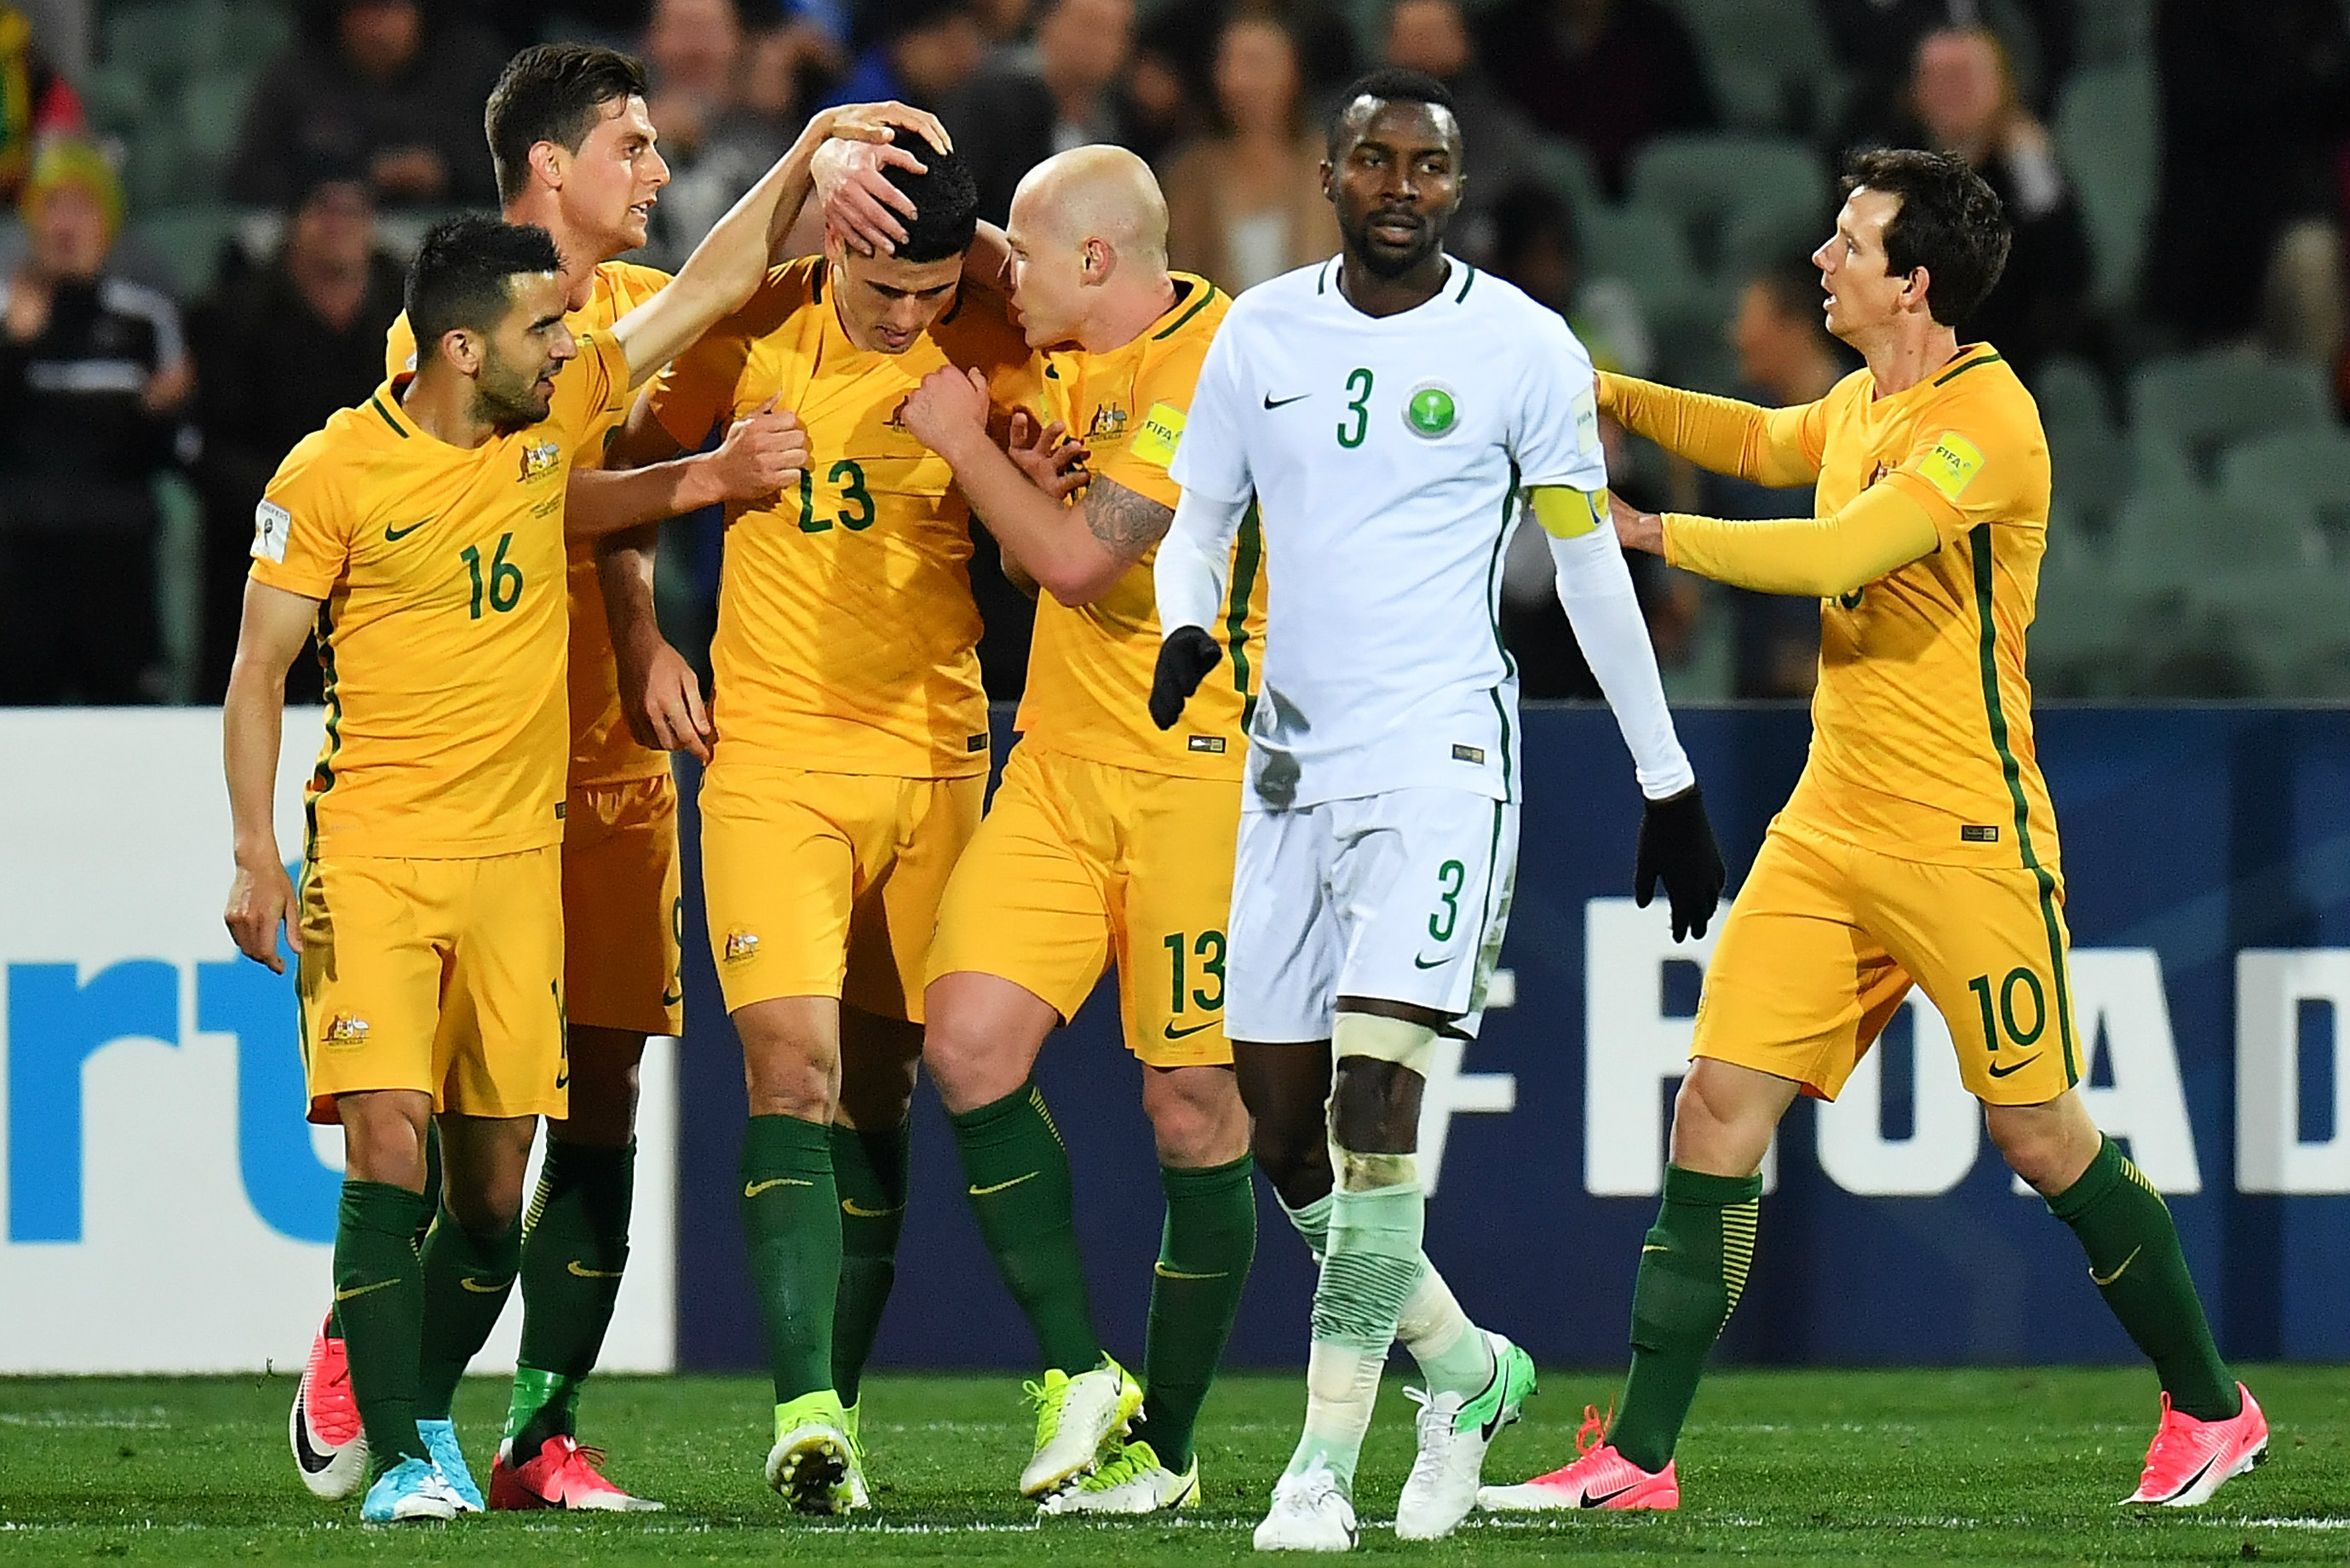 The Caltex Socceroos celebrate Tom Rogic's winner in Adelaide.